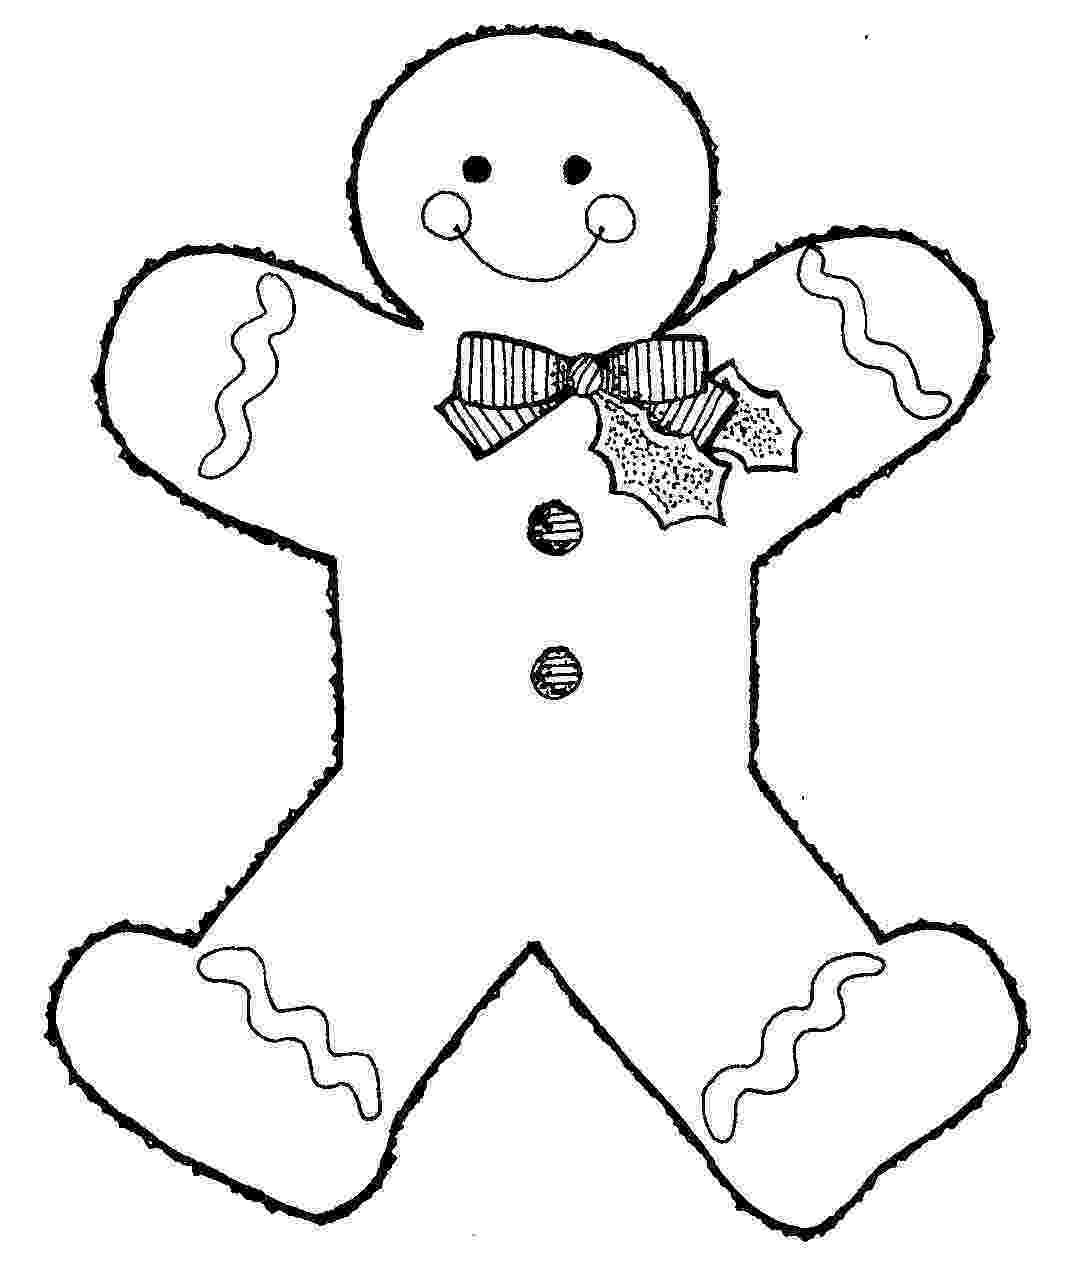 gingerbread coloring page free printable gingerbread man coloring pages for kids page gingerbread coloring 1 2